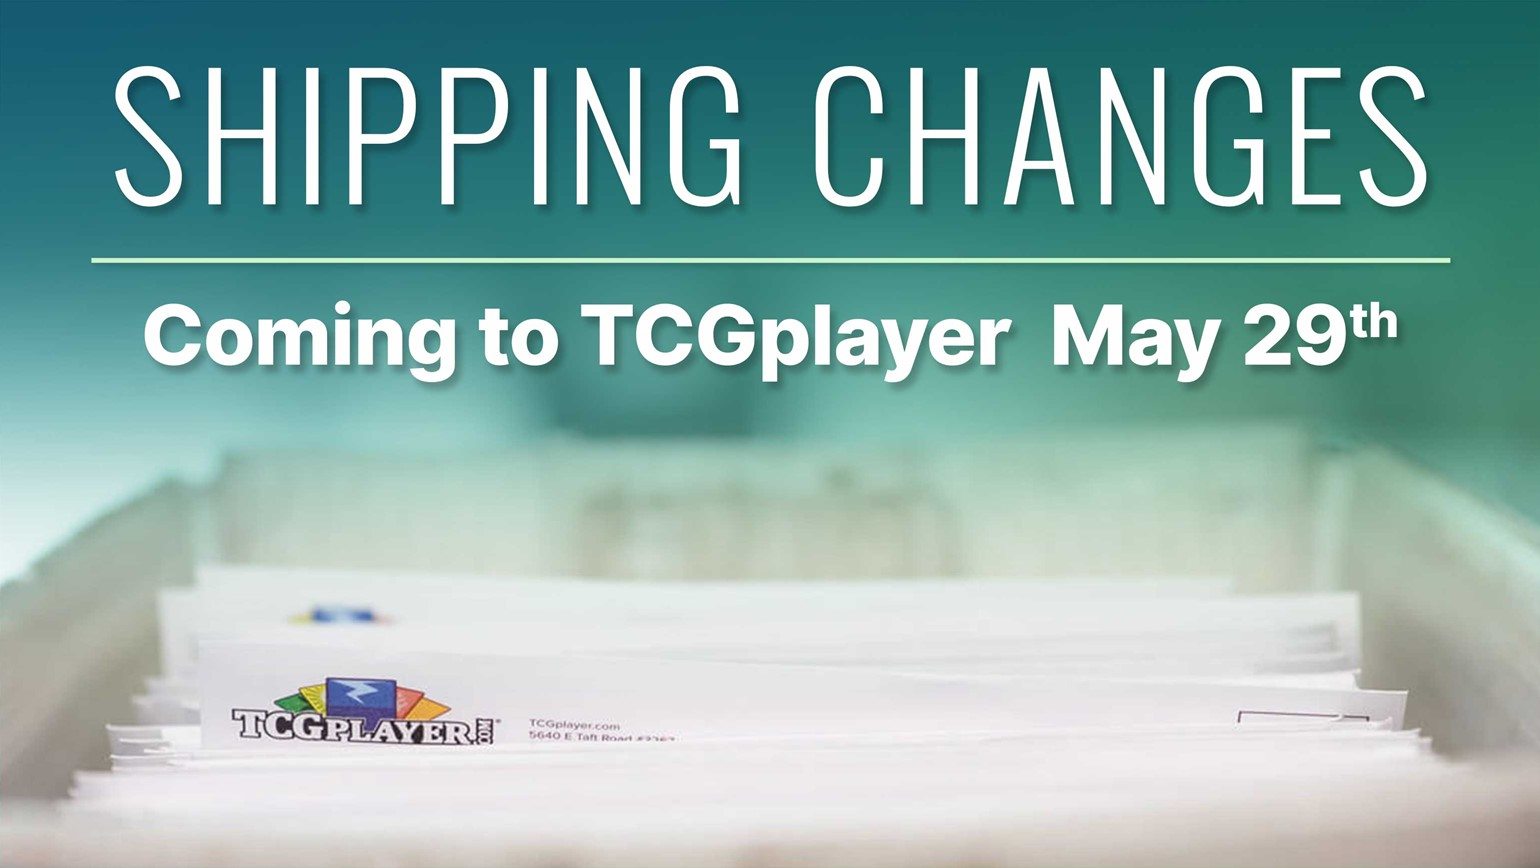 Shipping Changes Coming to TCGplayer May 29th